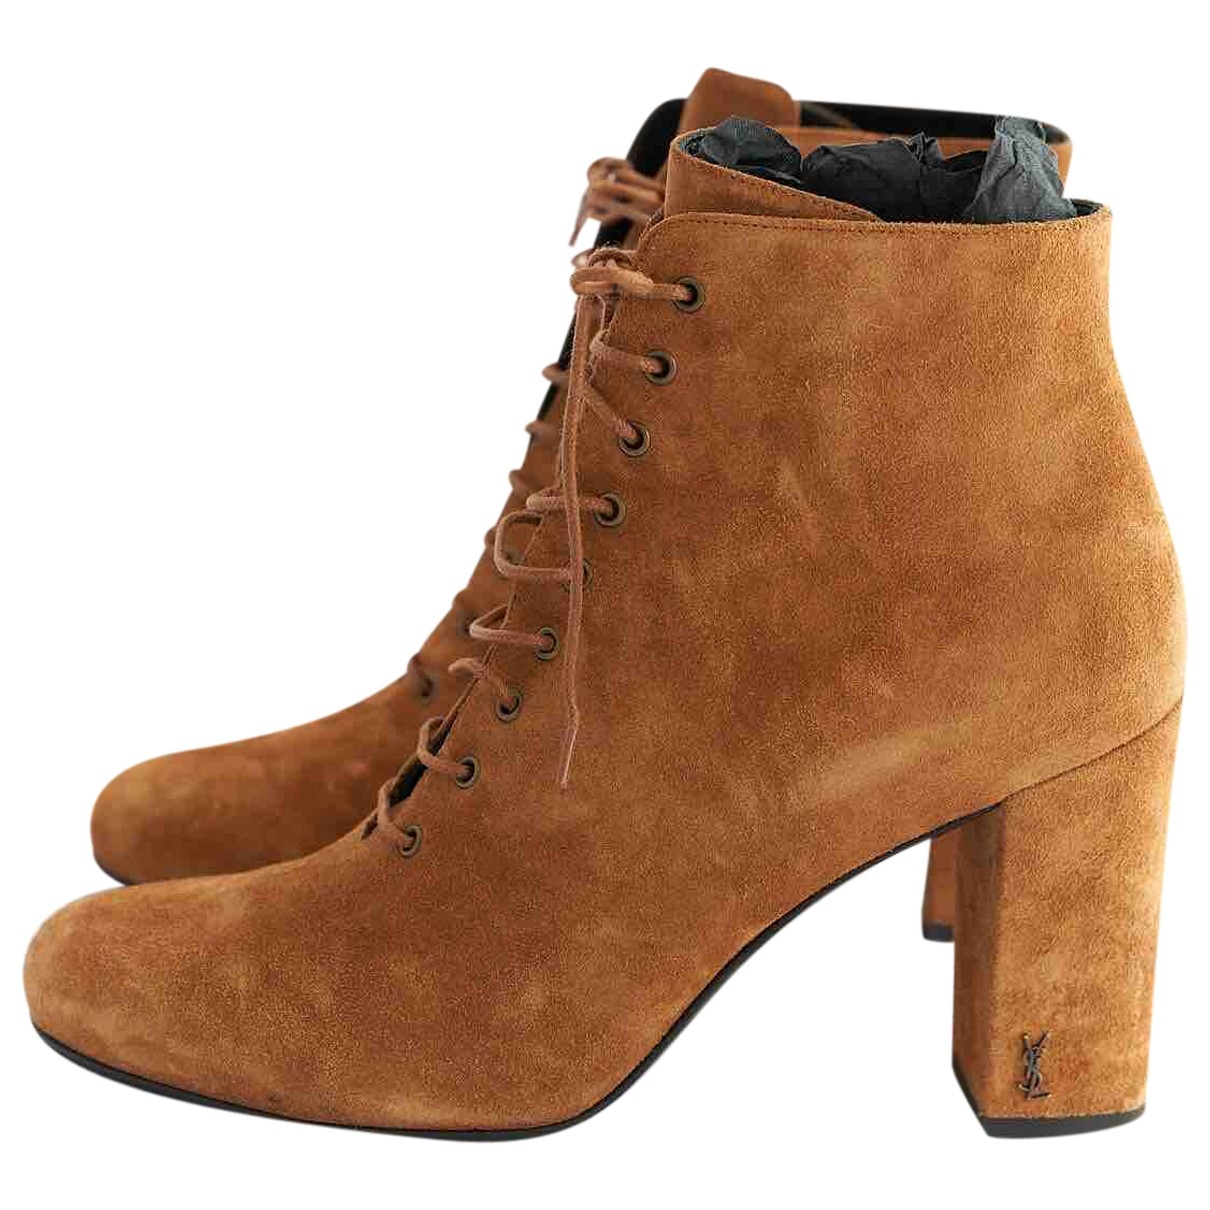 Yves Saint Laurent \N Brown Suede Ankle boots for Women 40.5 EU